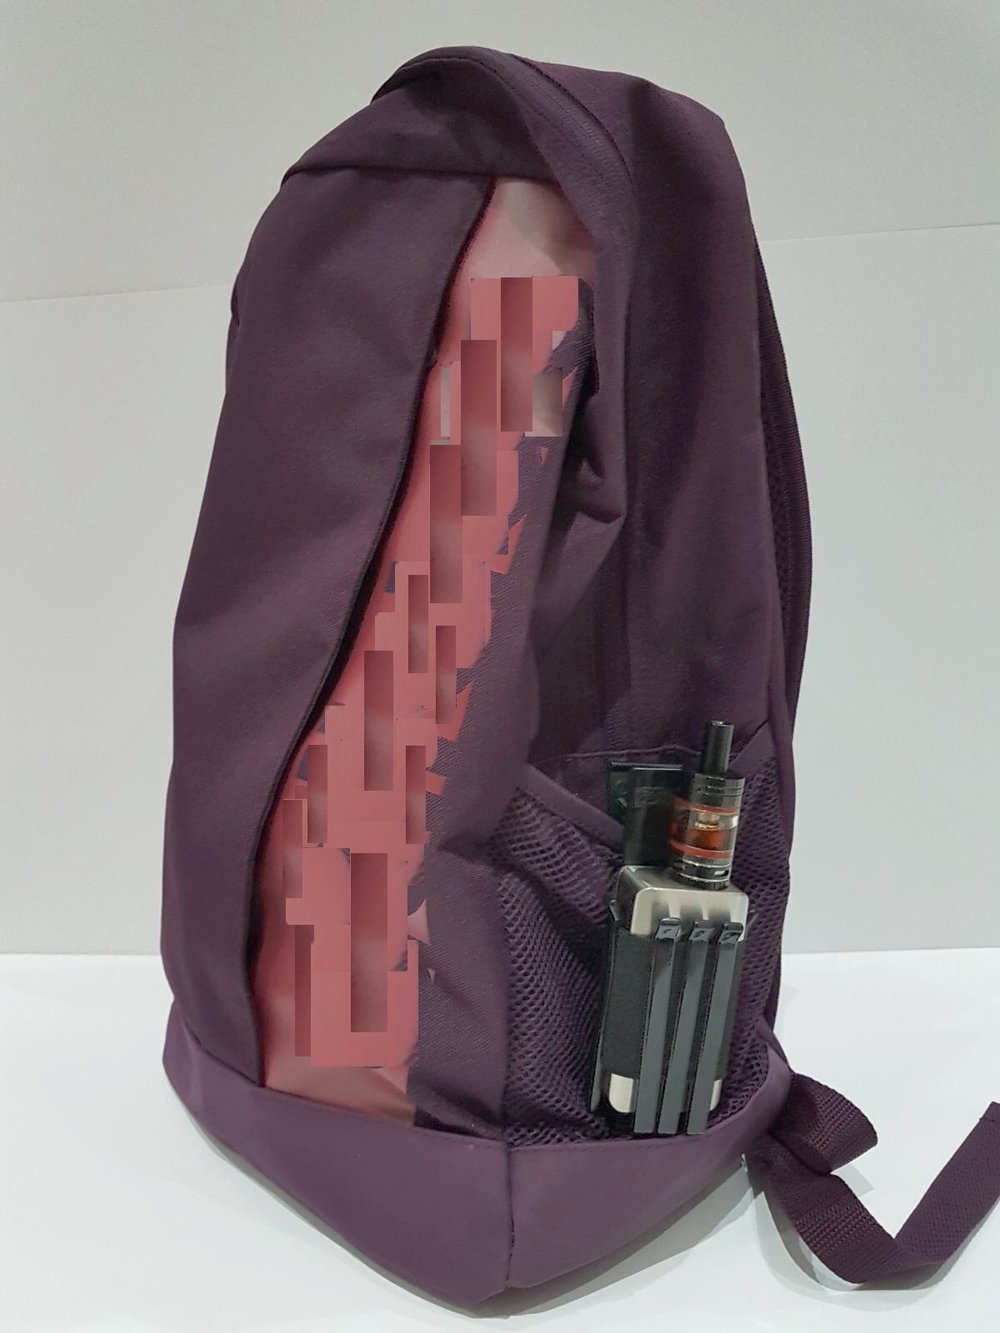 Clip the holder to your rucksack